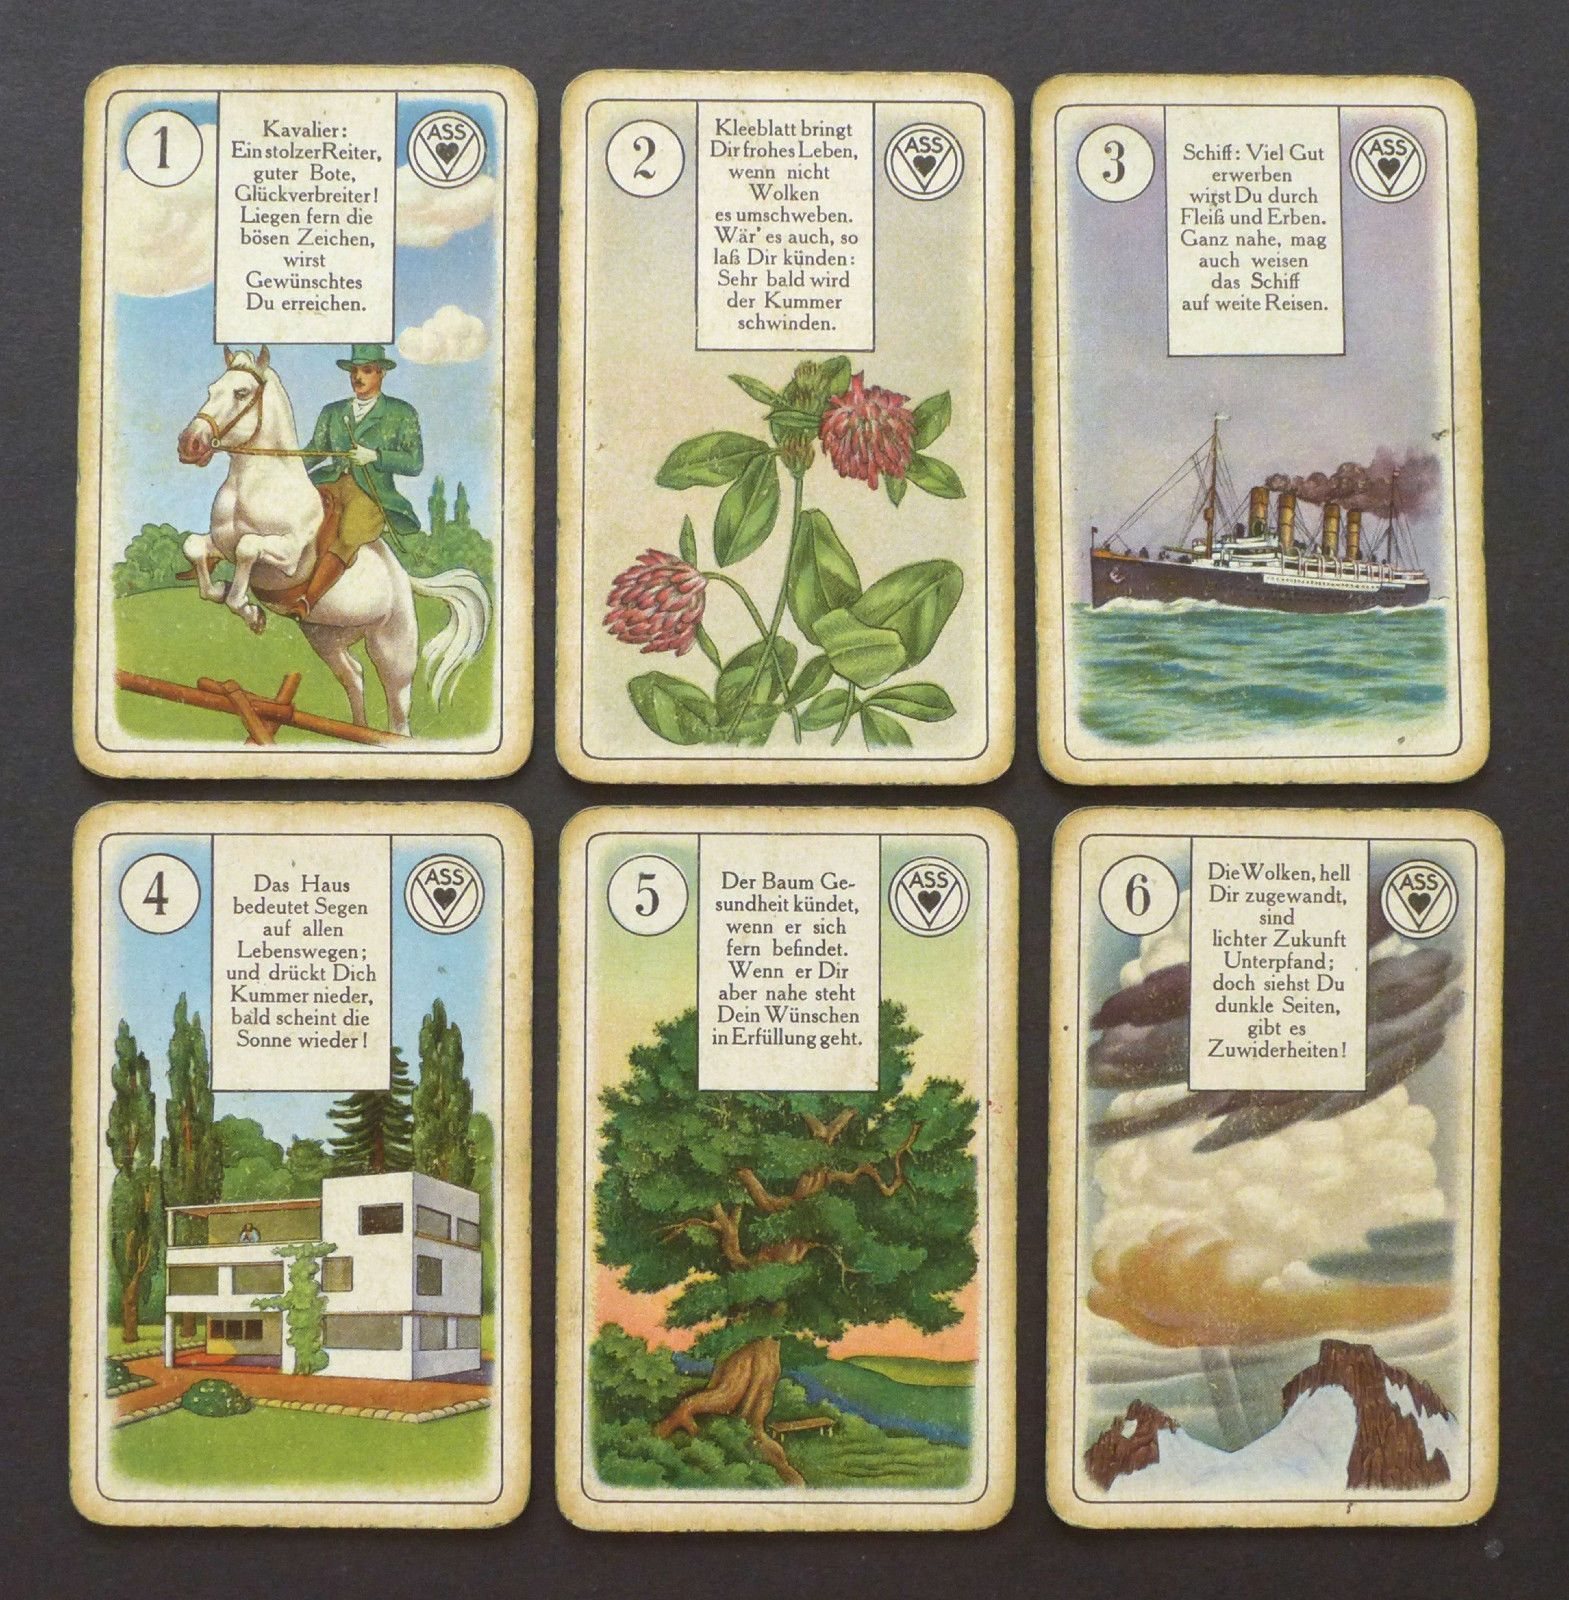 Antique Ass Lenormand Fortune Telling Cards Oracle Deck Nazi Germany Era Vintage | eBay